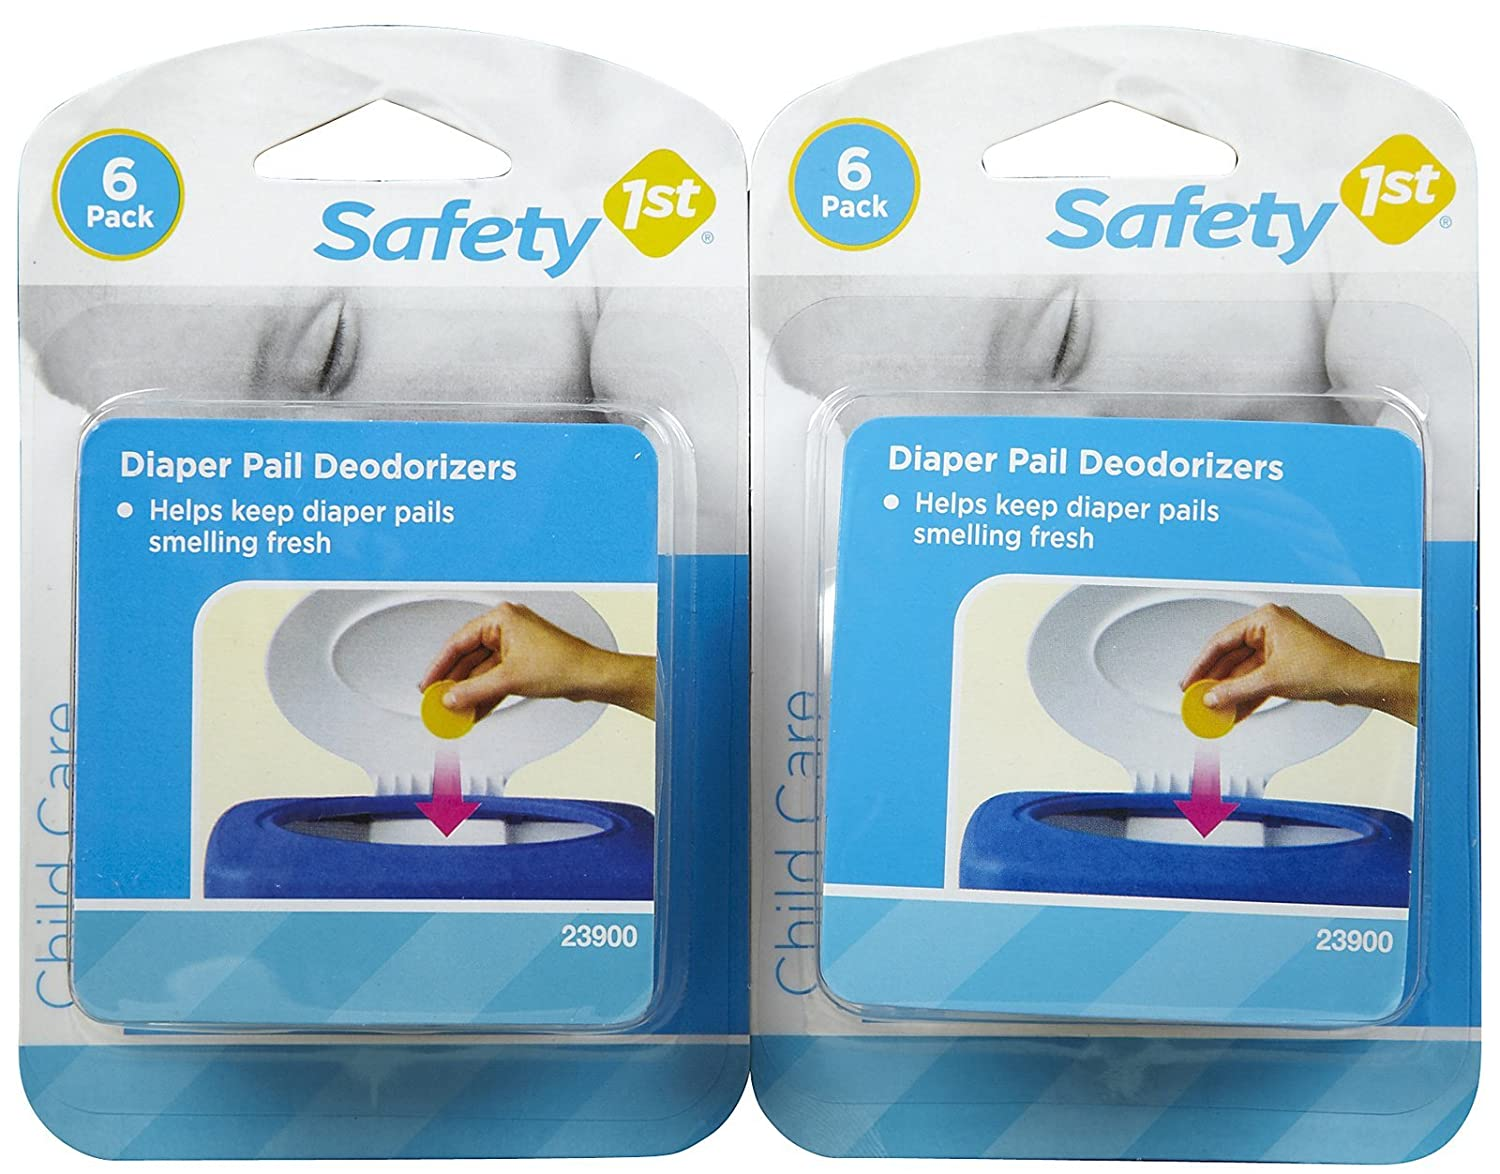 Safety 1st Diaper Pail Deodorizers - 12 pk SF-170B